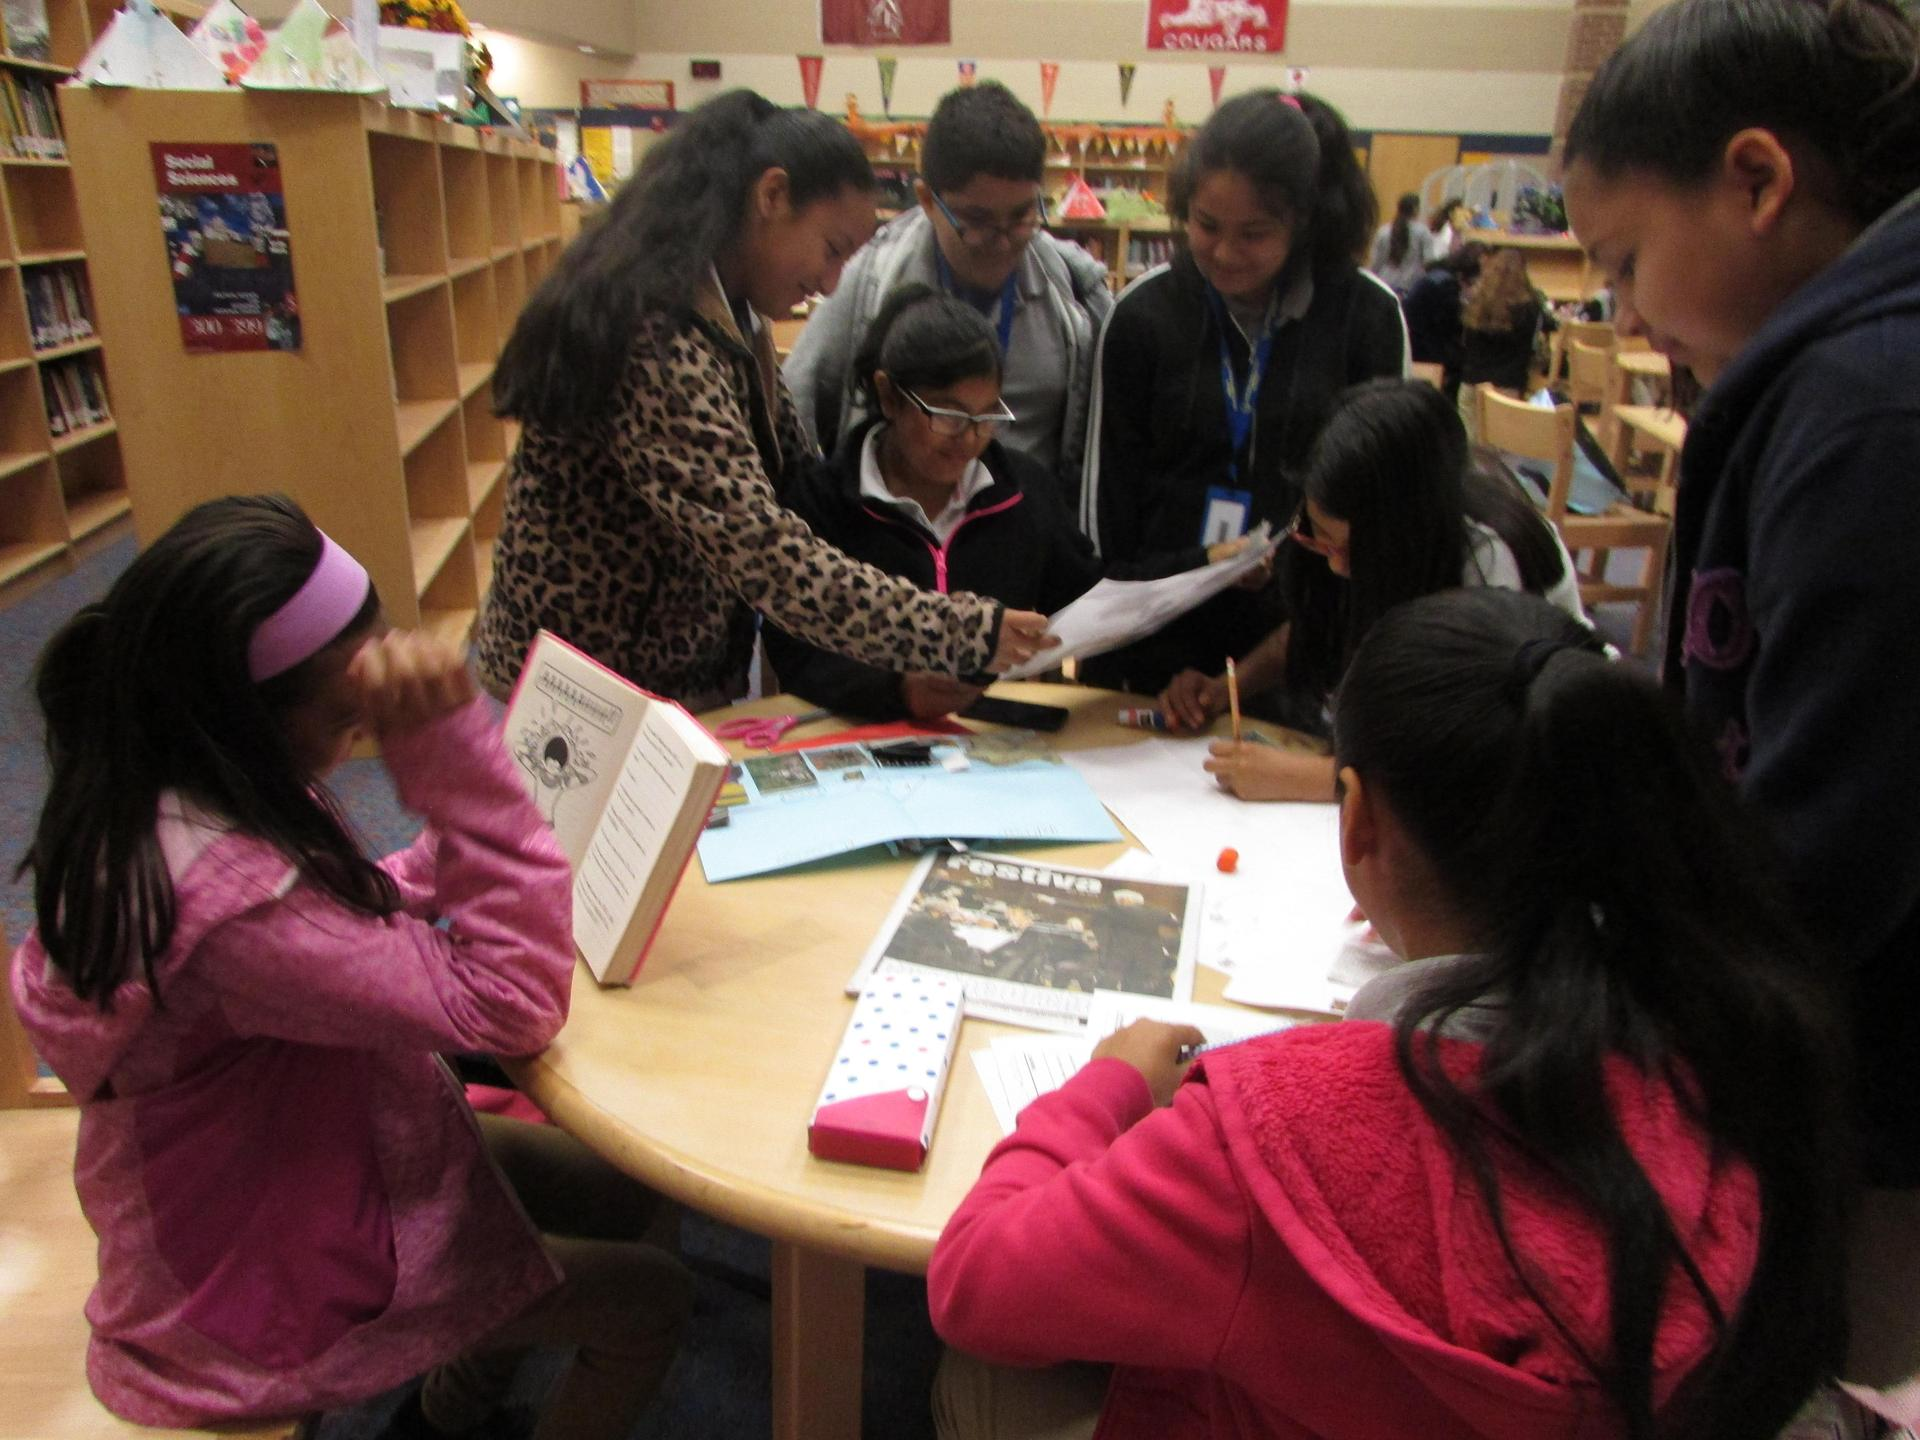 Students working on social studies project at the library.